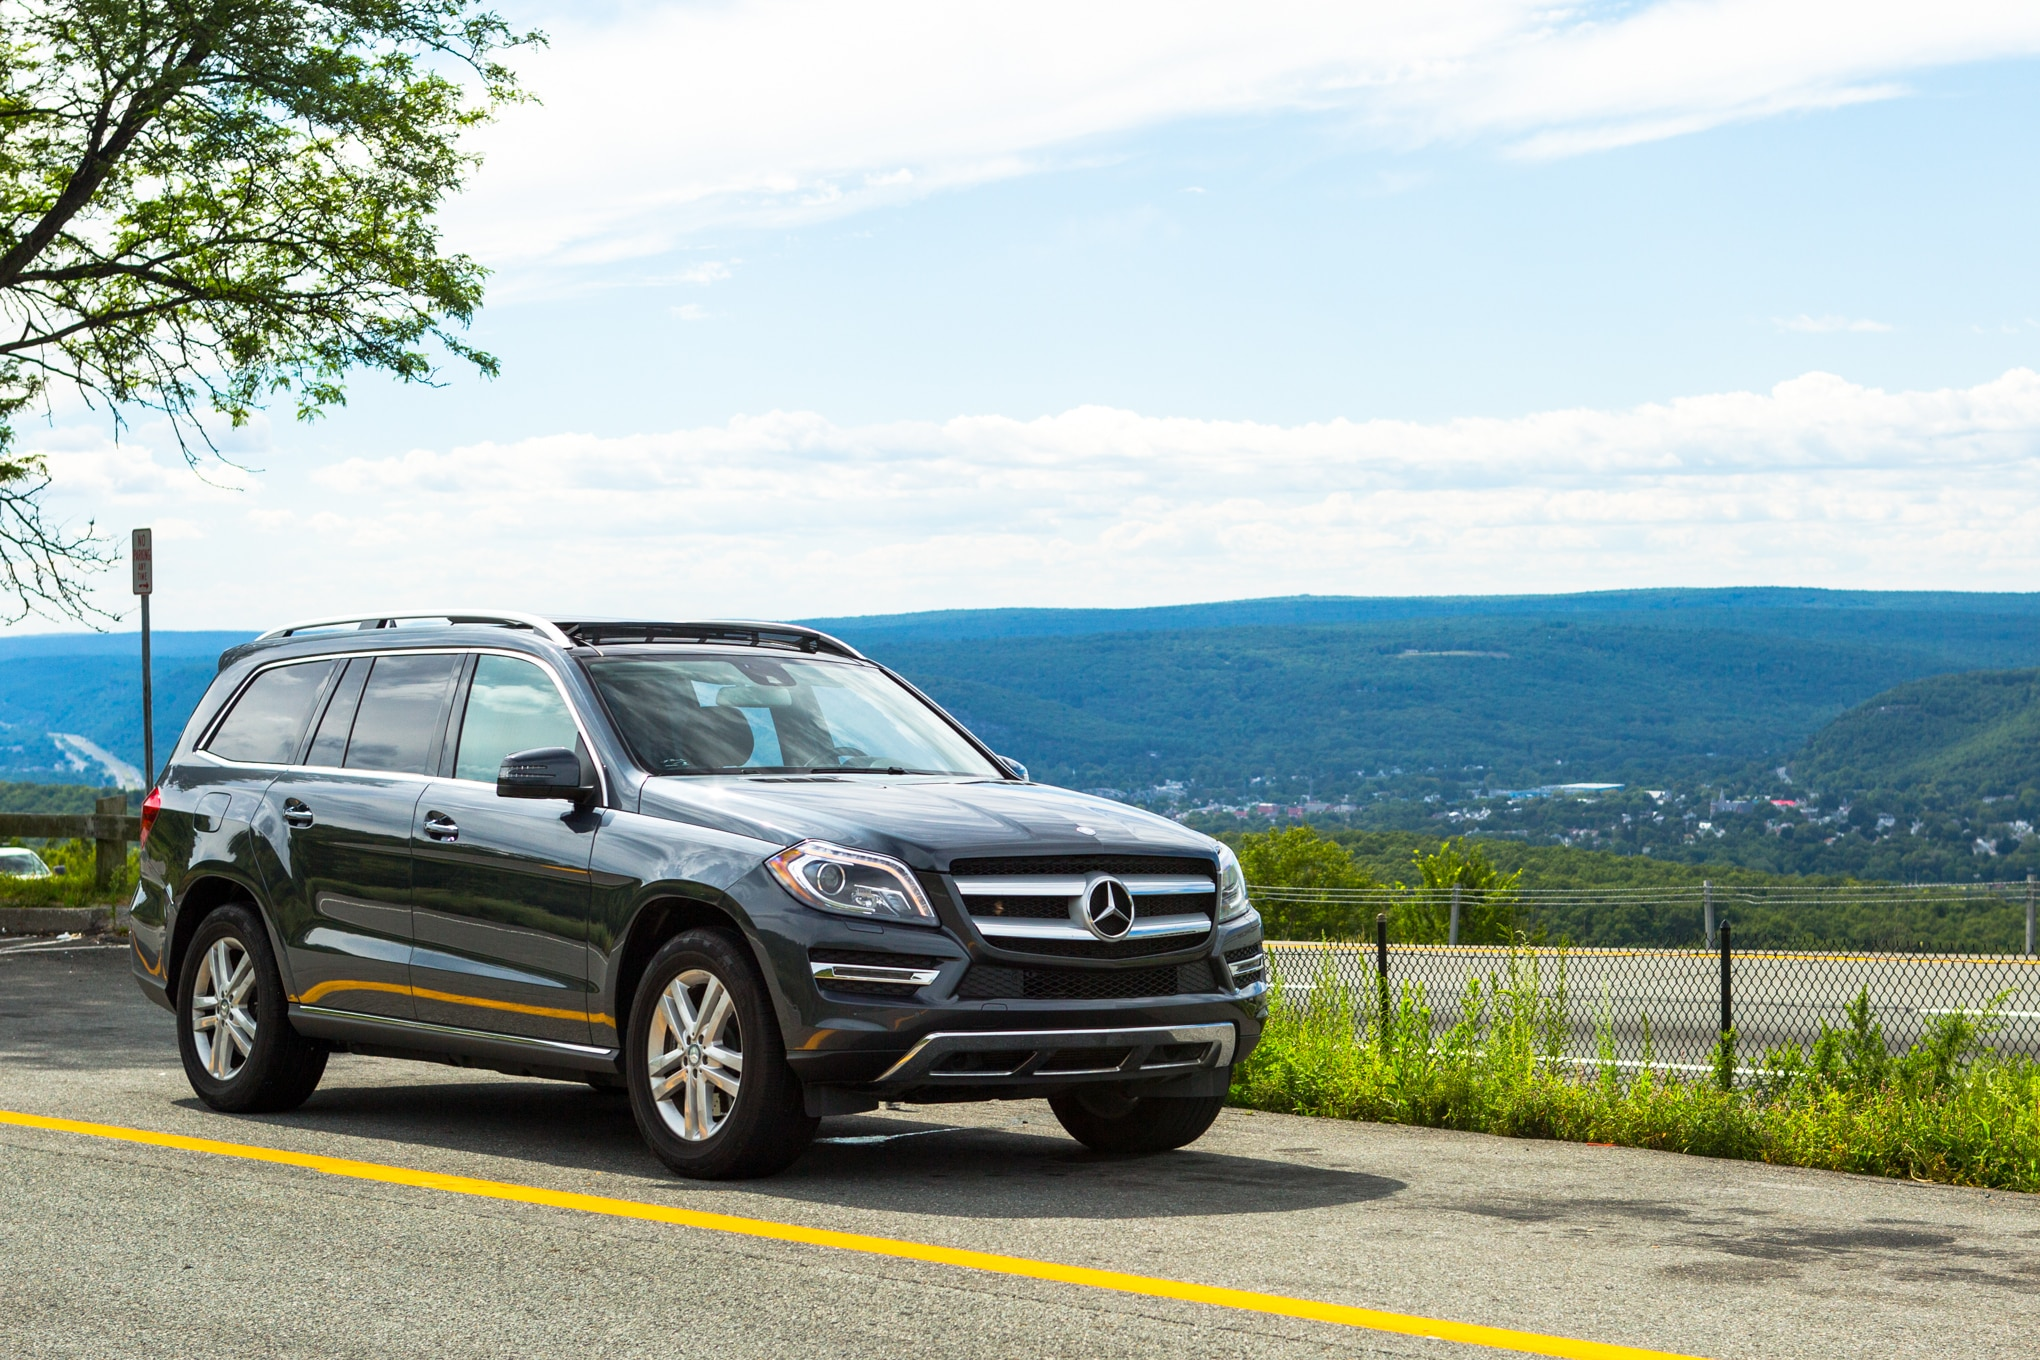 2013 mercedes benz gl450 four seasons update august for 2008 mercedes benz ml350 problems